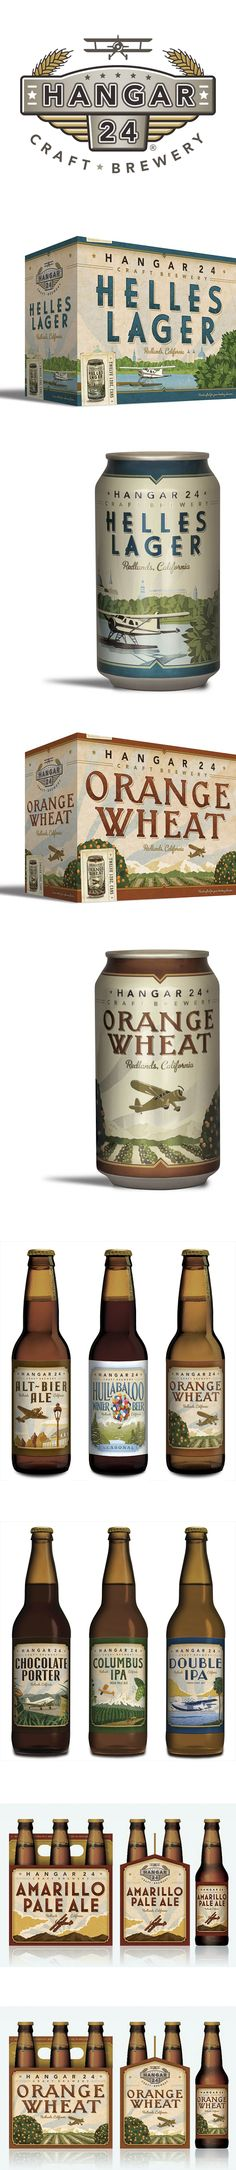 Hangar 24 Craft Brewery *** Hangar 24 Craft Brewery is located right next to a municipal airport and is surrounded by acres of orange groves in Redlands, California — it's also owned by a private pilot who has a passion for vintage airplanes.